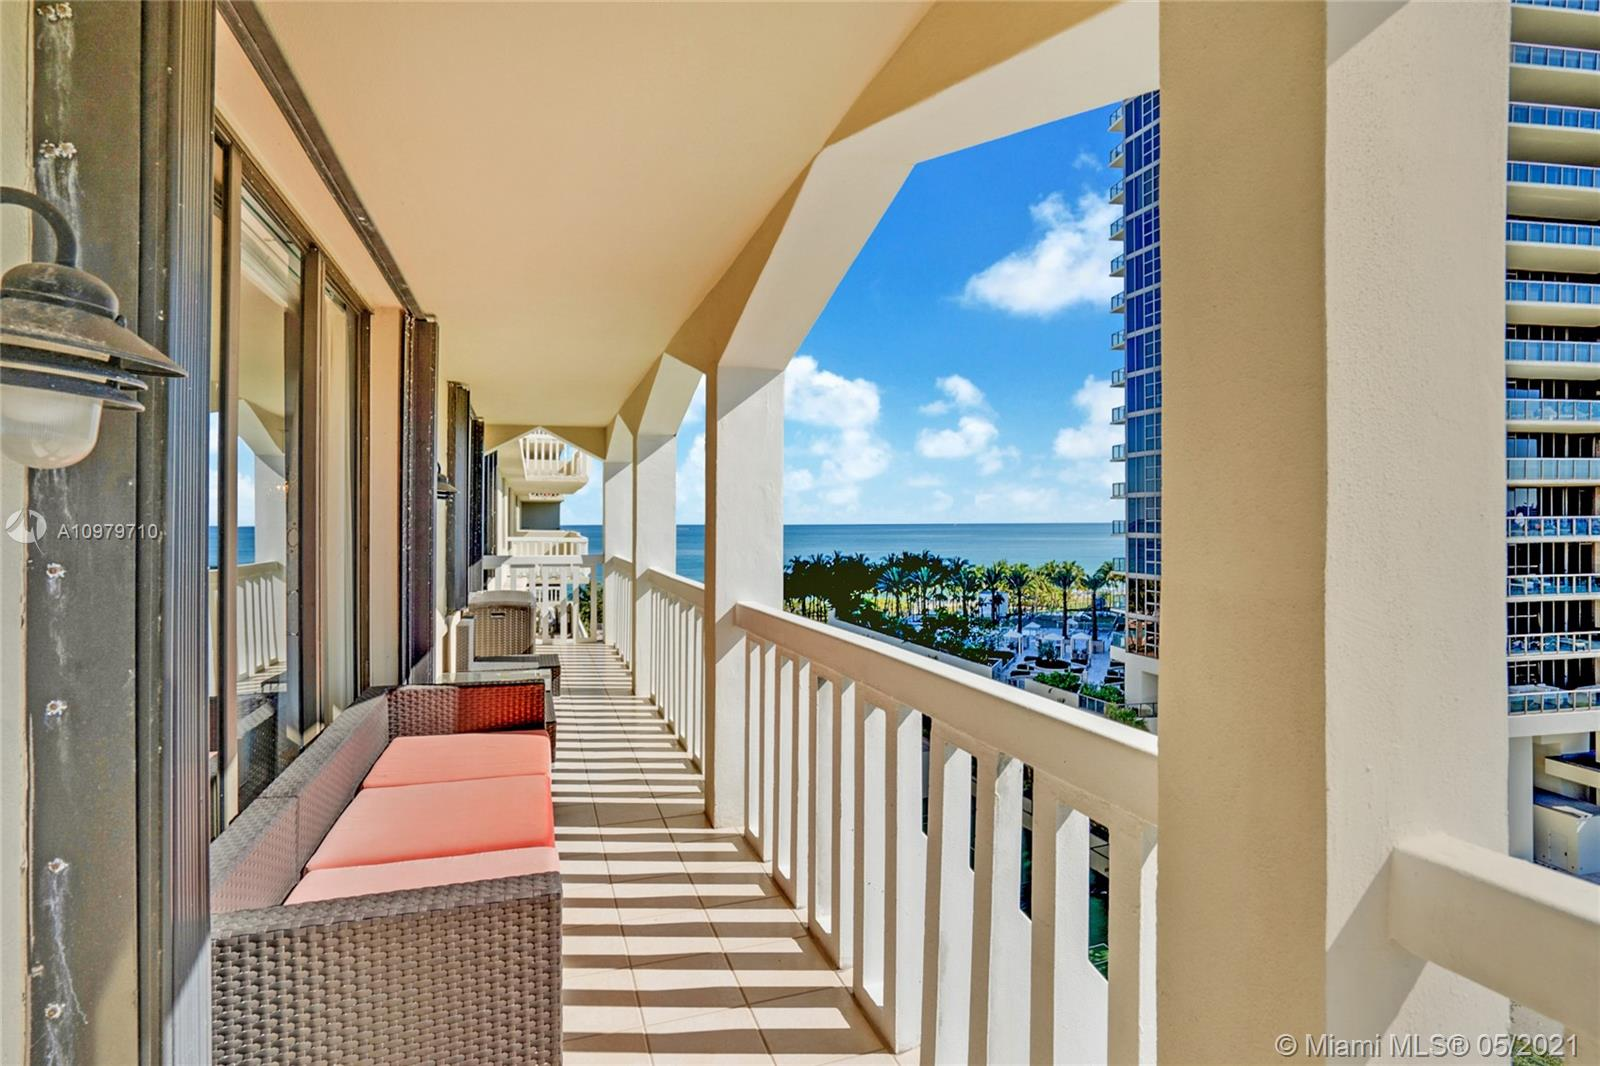 Photo of 9801 Collins Ave #10R, Bal Harbour, Florida, 33154 - 2 th nd bathroom